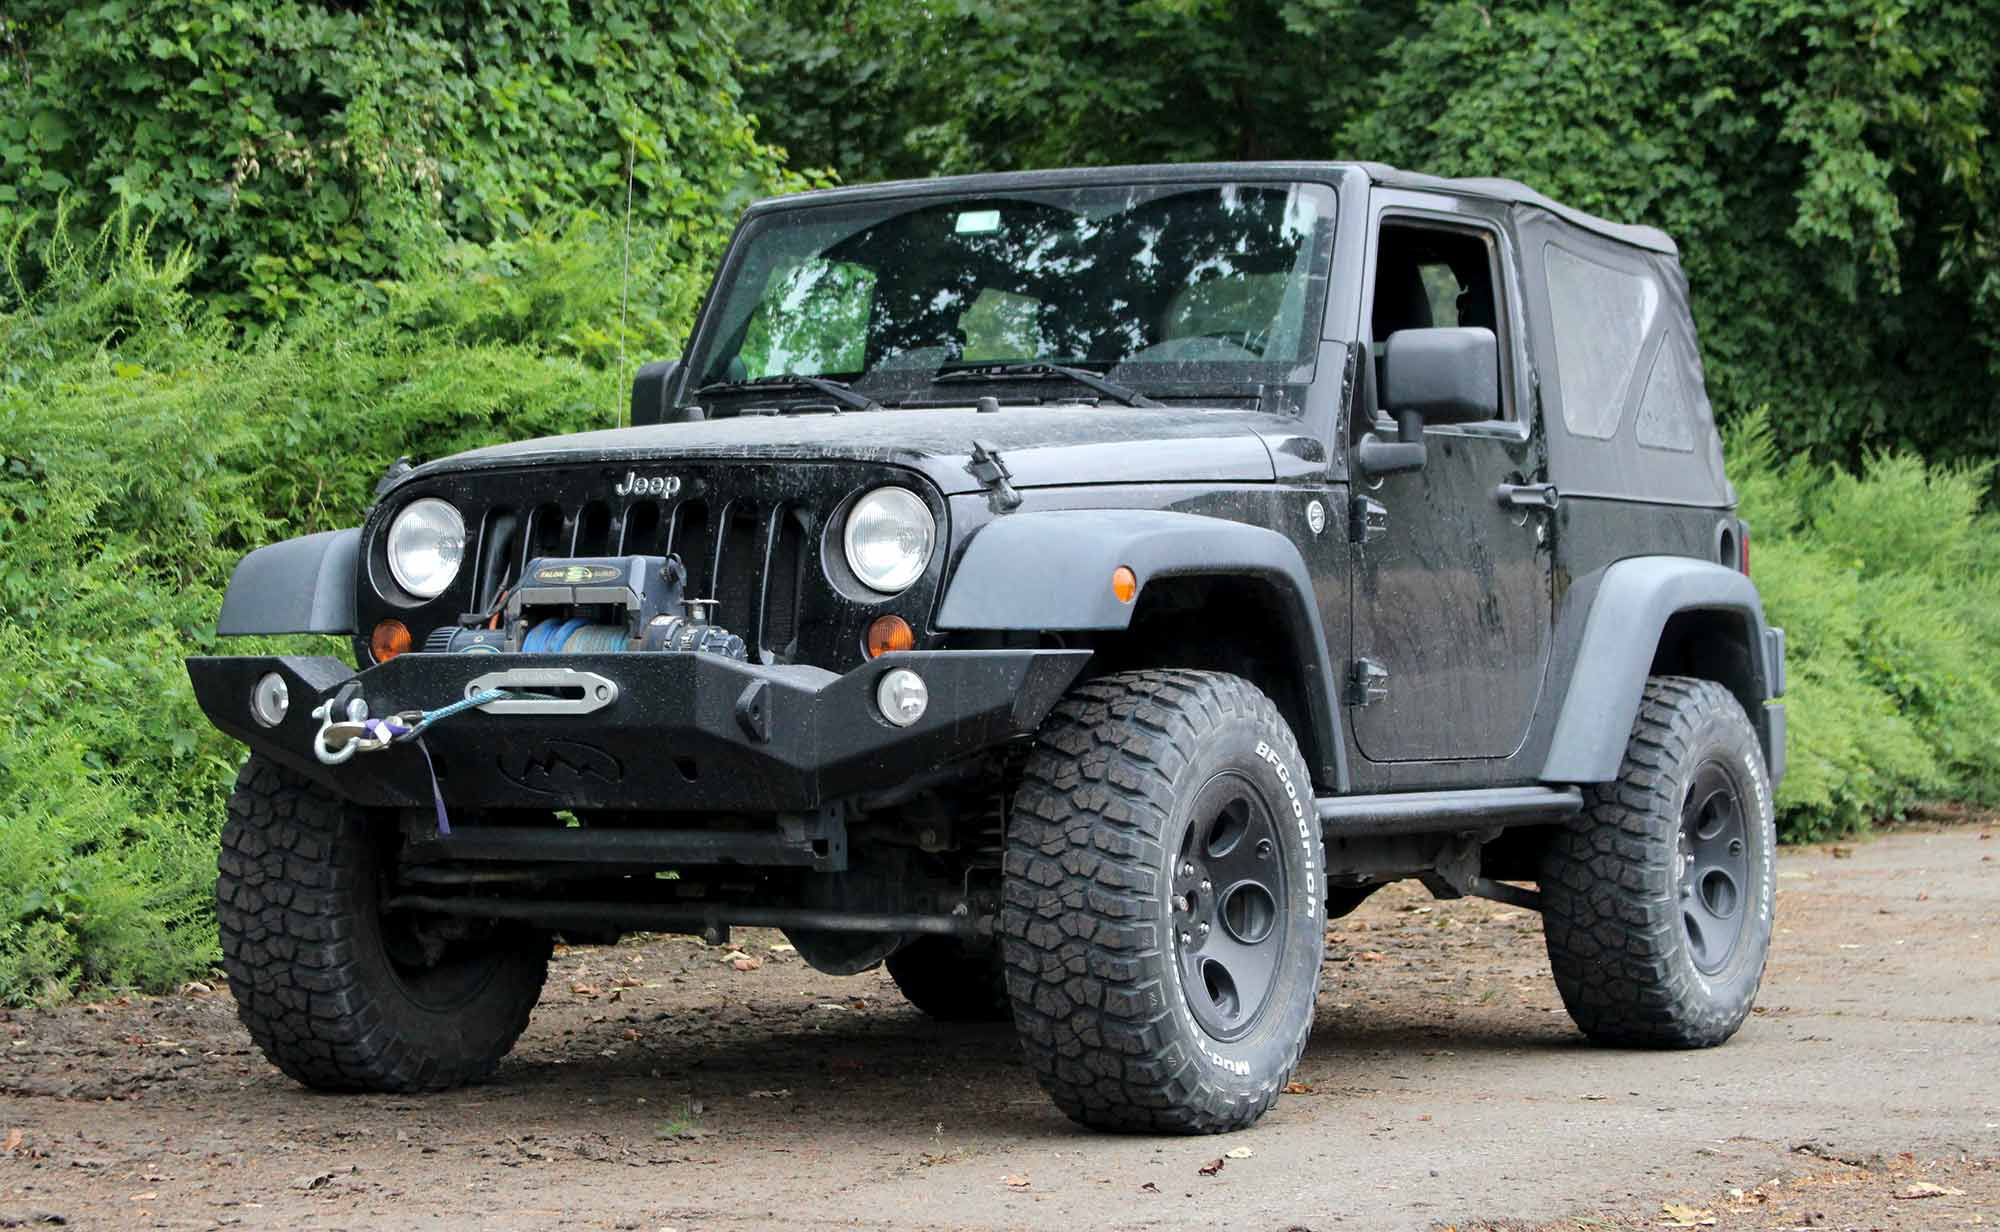 Our new-to-us 2012 Jeep Wrangler Sport will both tow and be compared to UTVs.